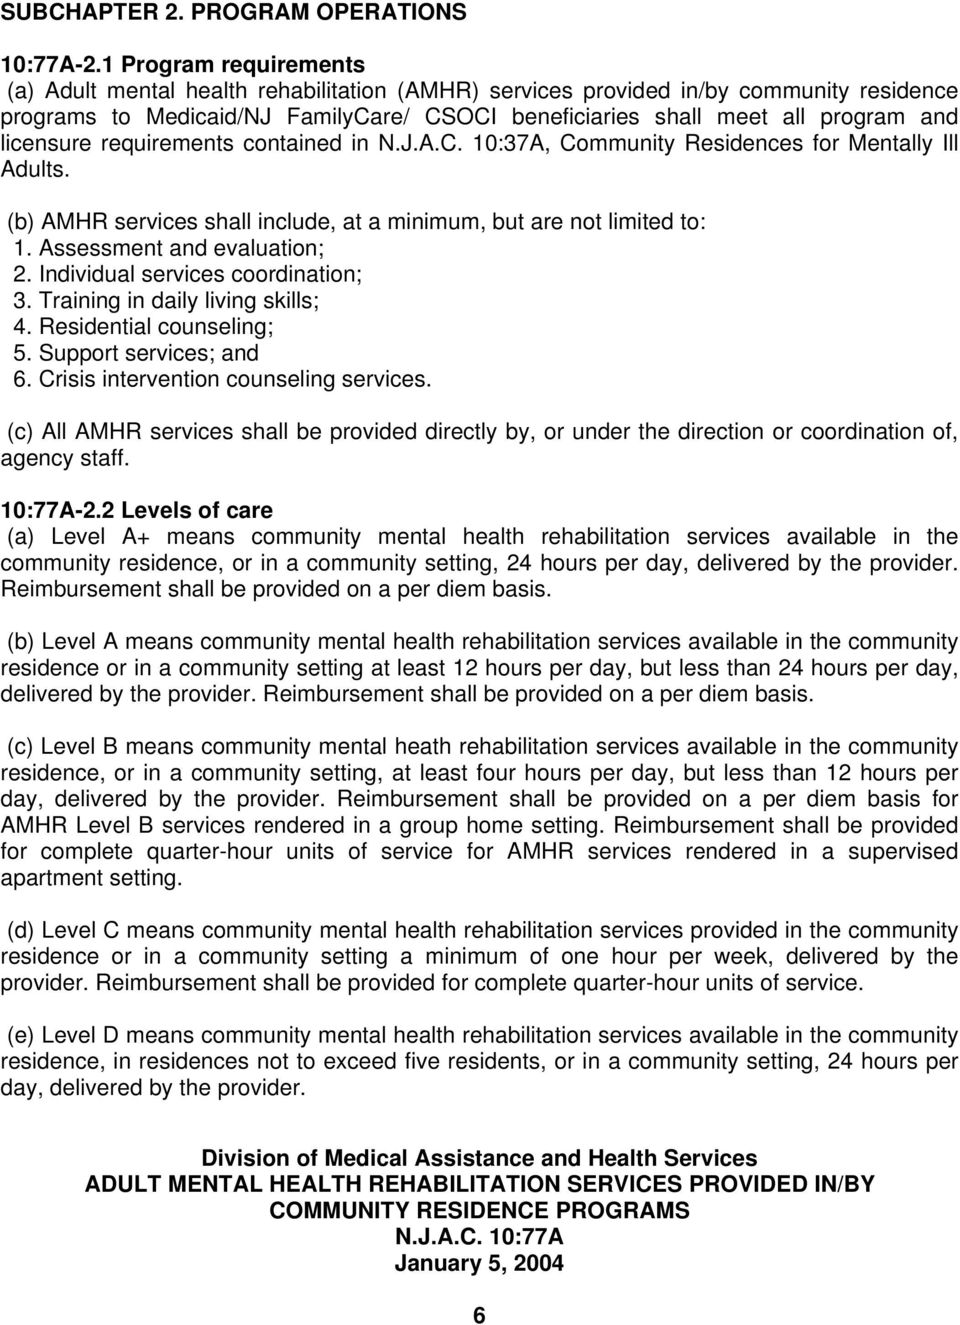 licensure requirements contained in N.J.A.C. 10:37A, Community Residences for Mentally Ill Adults. (b) AMHR services shall include, at a minimum, but are not limited to: 1.